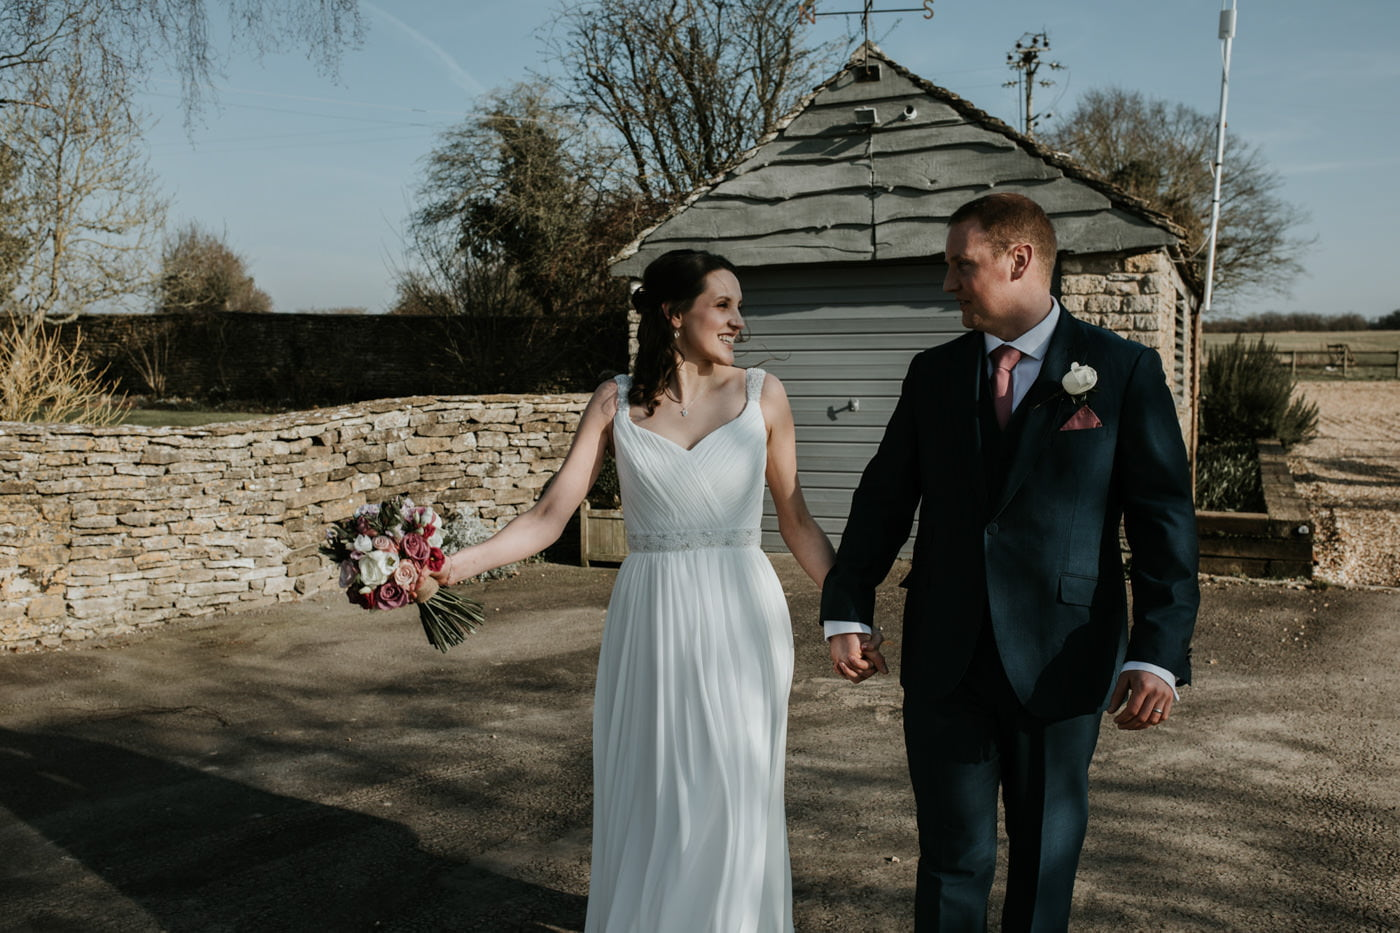 Ruth and Ben, Winkworth Farm, Wiltshire 65